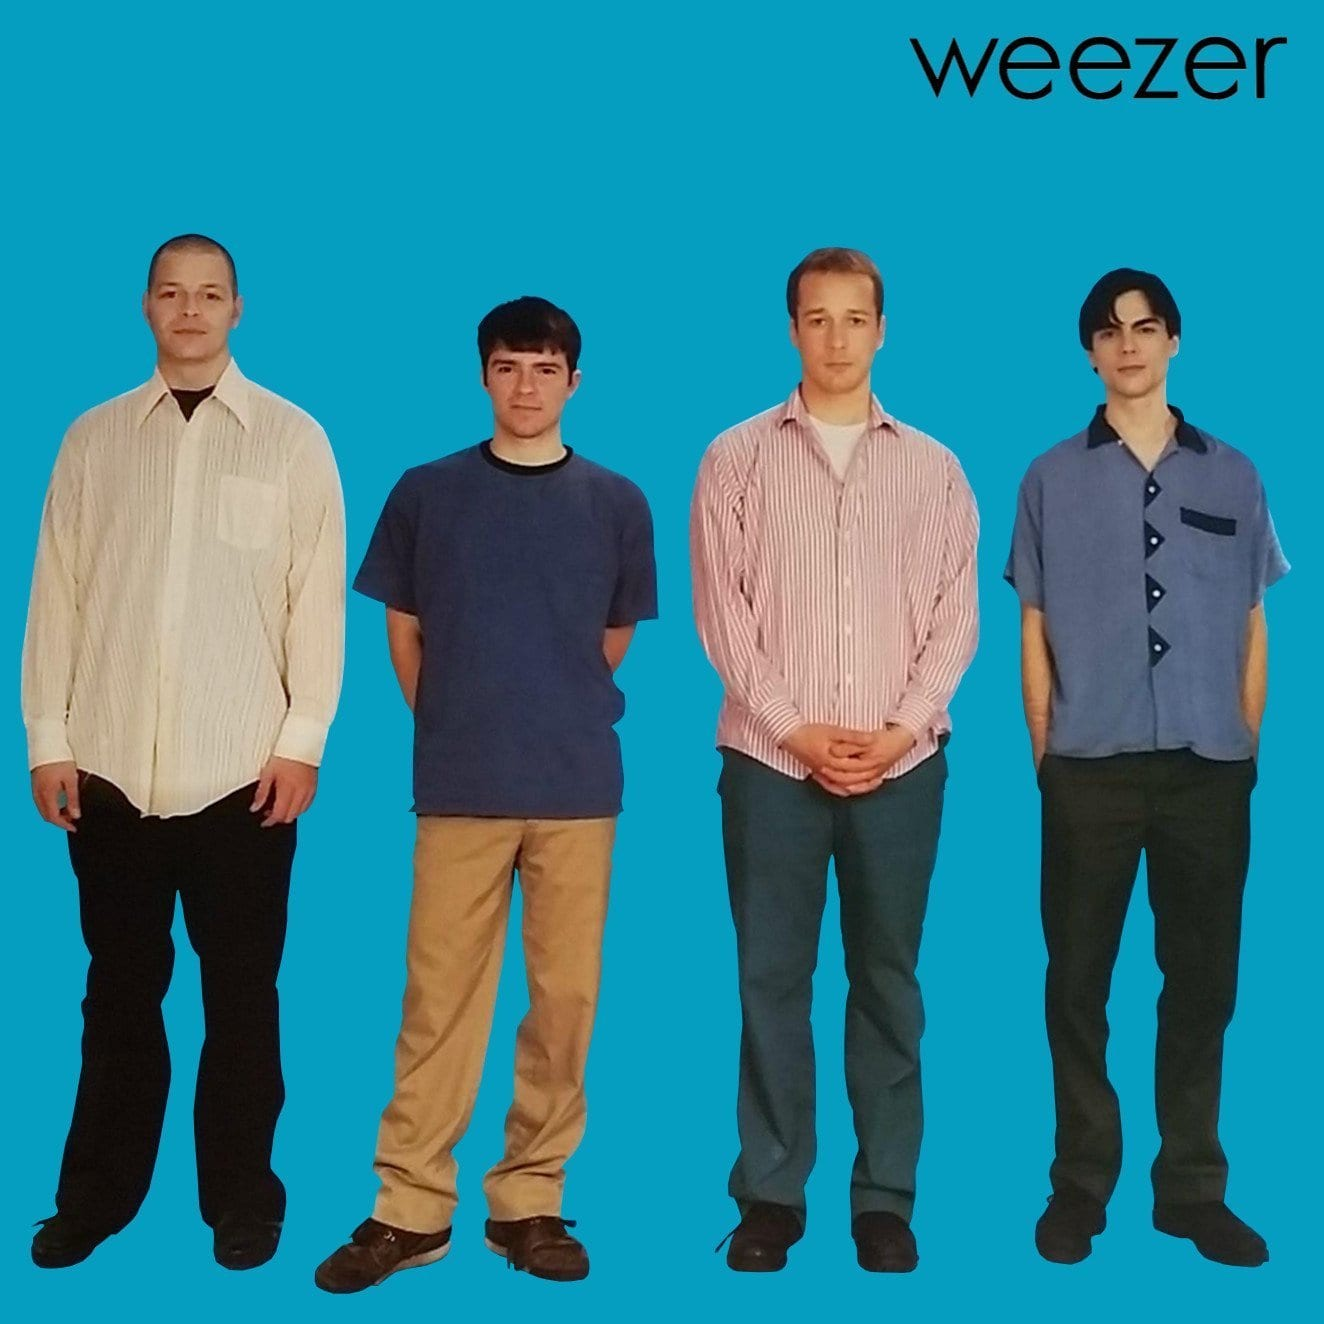 Weezer's first album cover was of the band on a blue background, which started a trend they use for most all their albums.